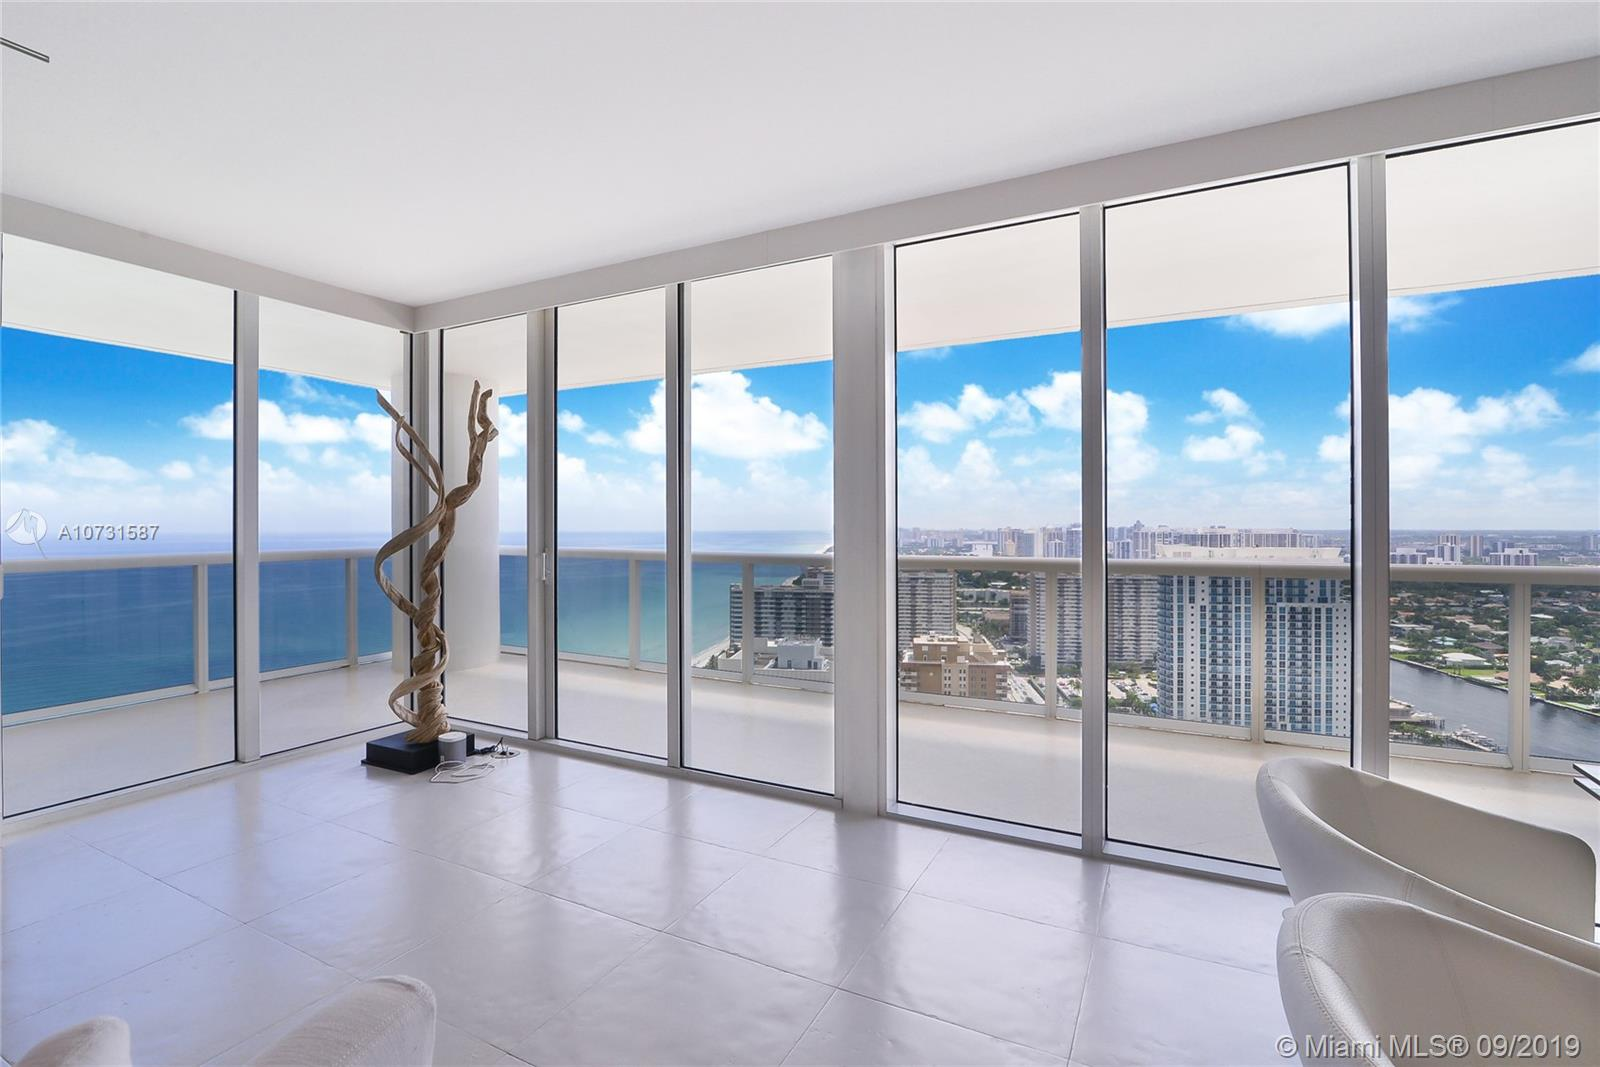 This stunning rarely available southside corner unit offers 270 degree views with direct ocean, intracoastal & coastline views  to South Beach. Owner spared no expense, upgraded bright spacious unit with state of the art kitchen, newer appliances, custom closets, 2 bed/2 full bath plus additional den created to be used as guest suite or office. Enjoy sunrise and sunsets from your two private large balconies. Updated bathrooms with newer vanities. LG washer & dryer. Beach Club complex offers 5 star amenities, multiple pools, 2-story fitness center, 24 hr valet, security, private beach access. Close to restaurants, shopping, airports, casinos and all major attractions.